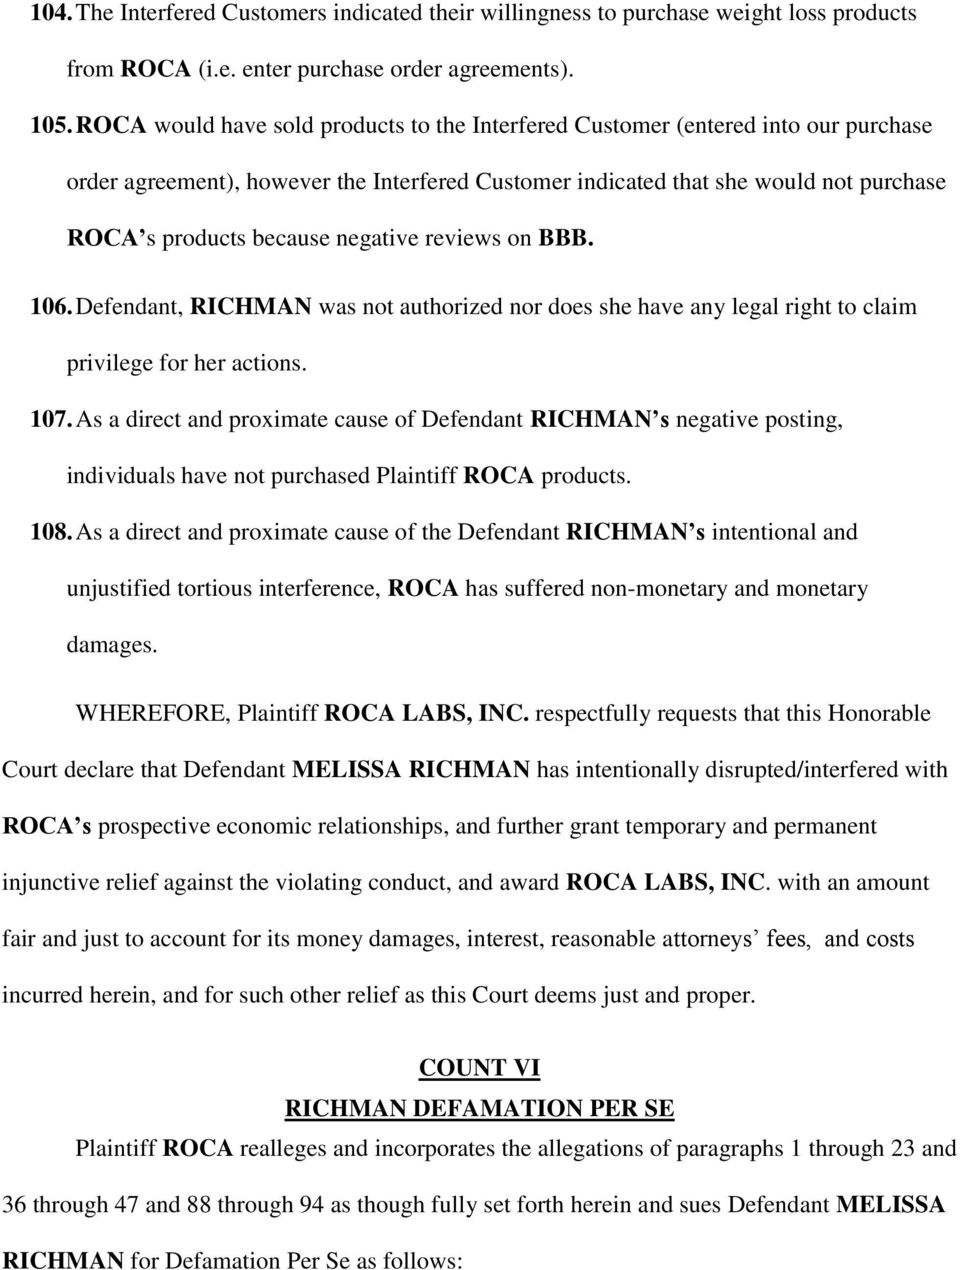 negative reviews on BBB. 106. Defendant, RICHMAN was not authorized nor does she have any legal right to claim privilege for her actions. 107.